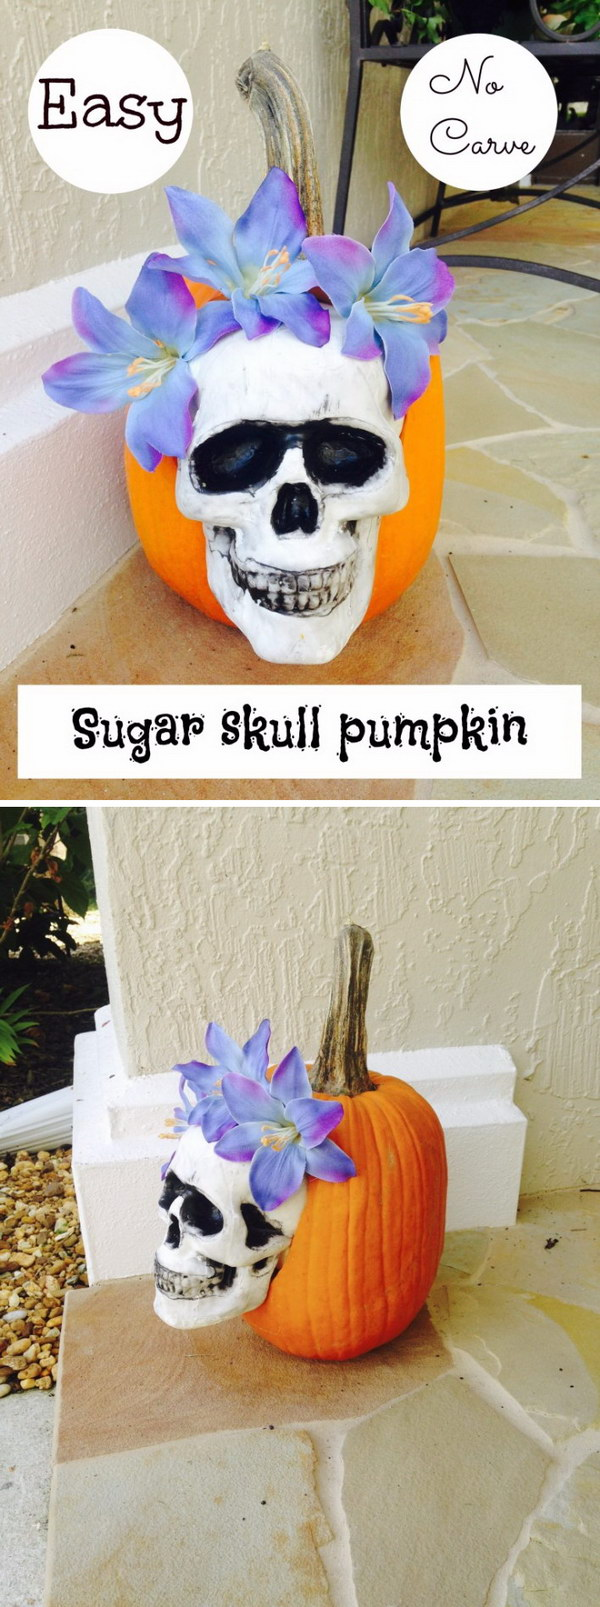 Easy No Carve Sugar Skull  Pumpkin Decorating.